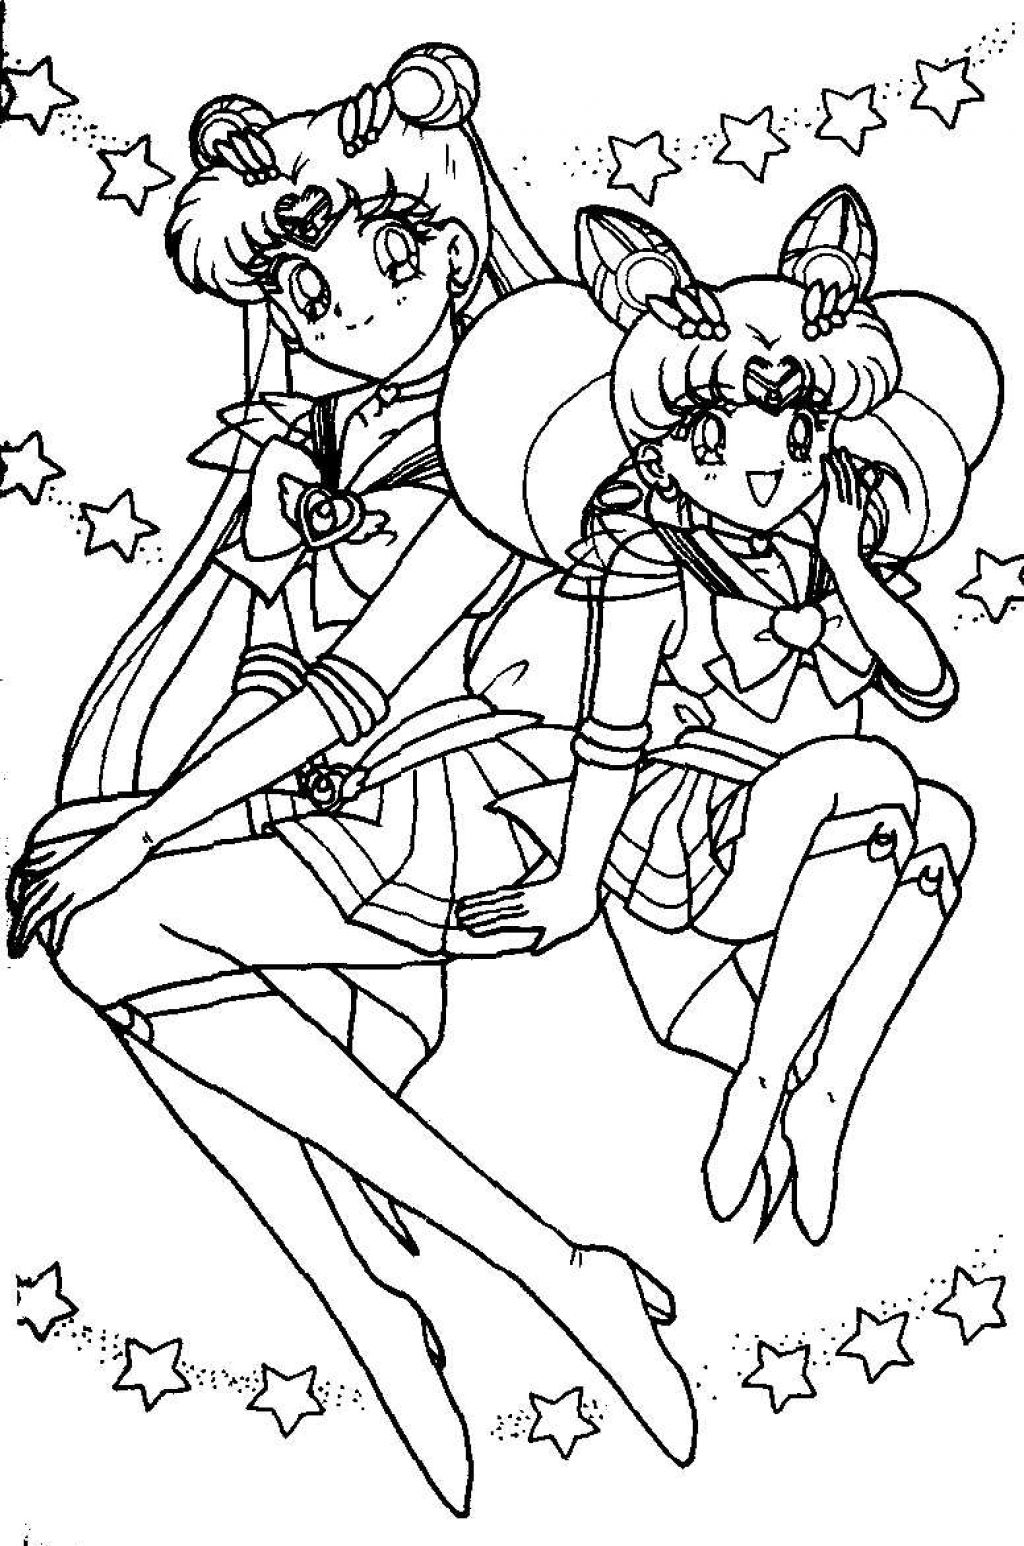 sailor moon coloring pages characters - photo#32